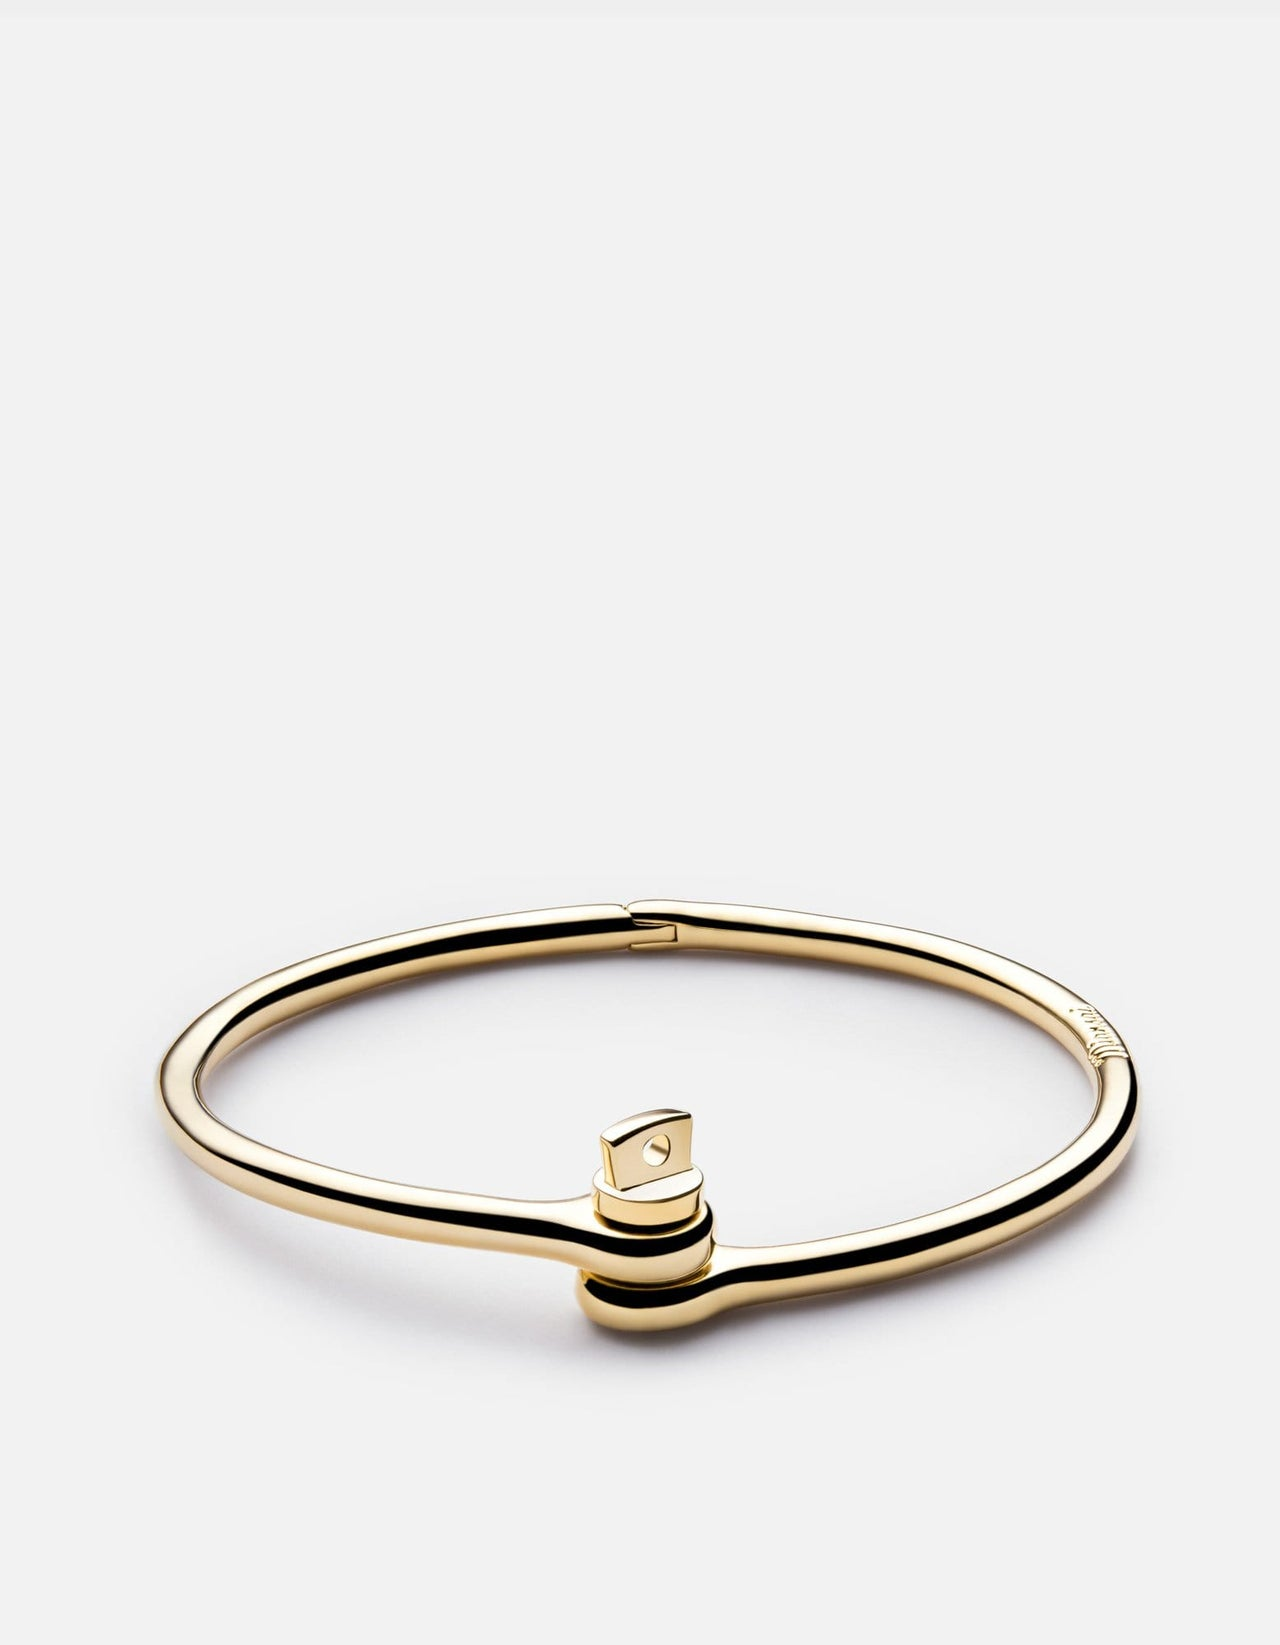 al for bracelet products marks homewood white jewelry mg bangle women bracelets bangles gold estate